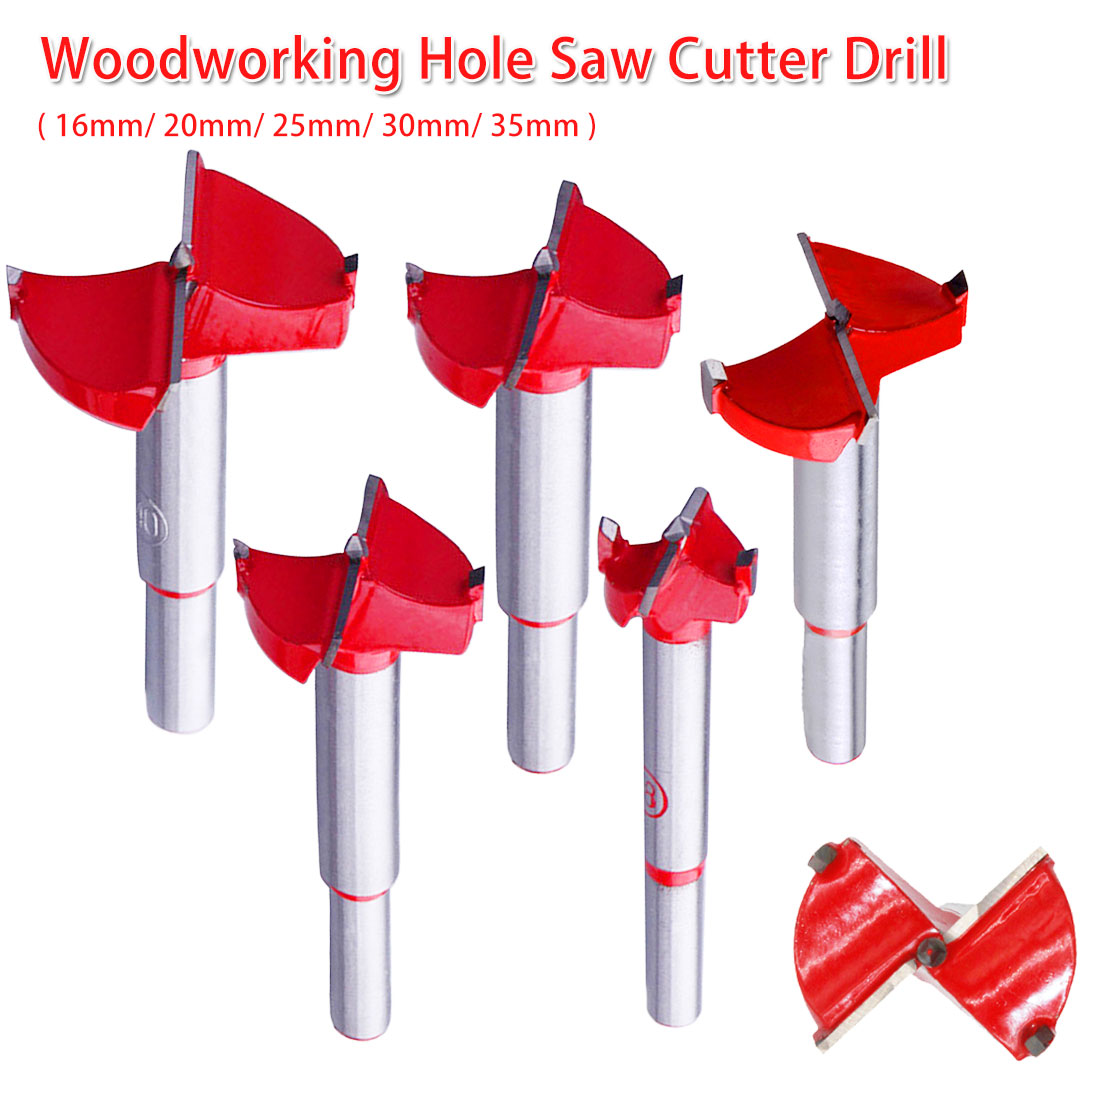 16-35mm Professional Forstner Woodworking Hole Saw Cutter Alloy Hole Opener Drill Bit Flat Wing Drill For Wood Panel/ Cabinet